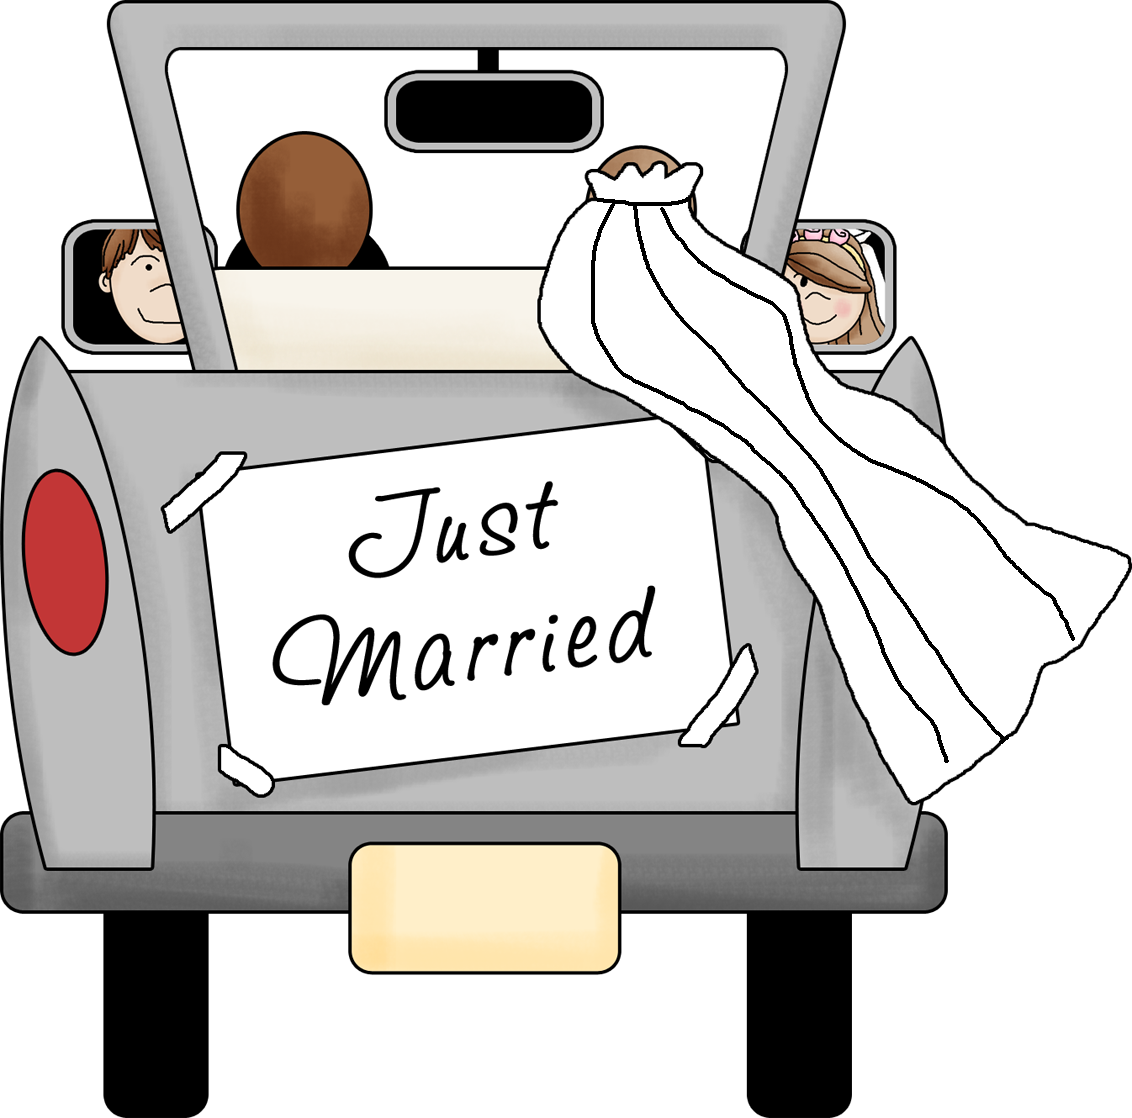 Just married car clipart free i8lAcPGckQskw.png (1132×1118) | wedding gift | Pinterest free